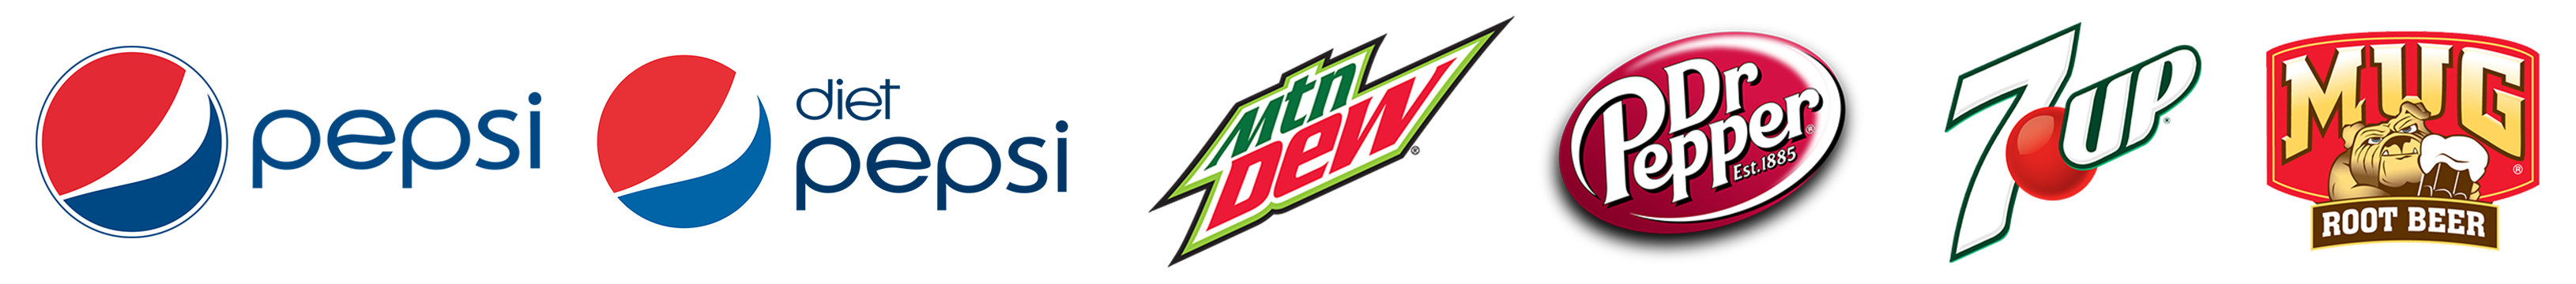 Drinks Logos — Pepsi | Diet Pepsi | Mountain Dew | Dr Pepper | 7 Up | Mug Root Beer